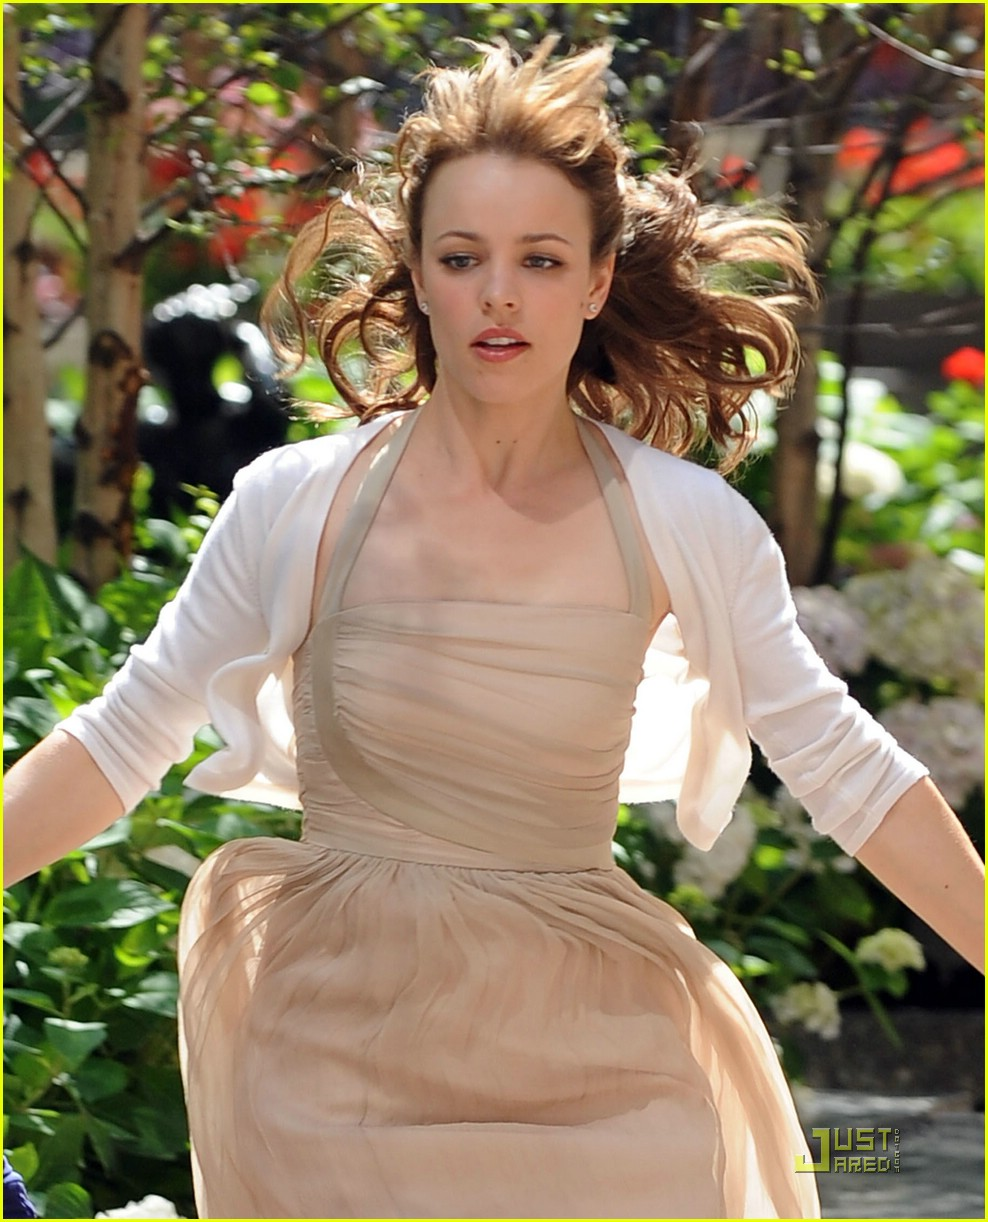 Full Sized Photo of ra... Rachel Mcadams